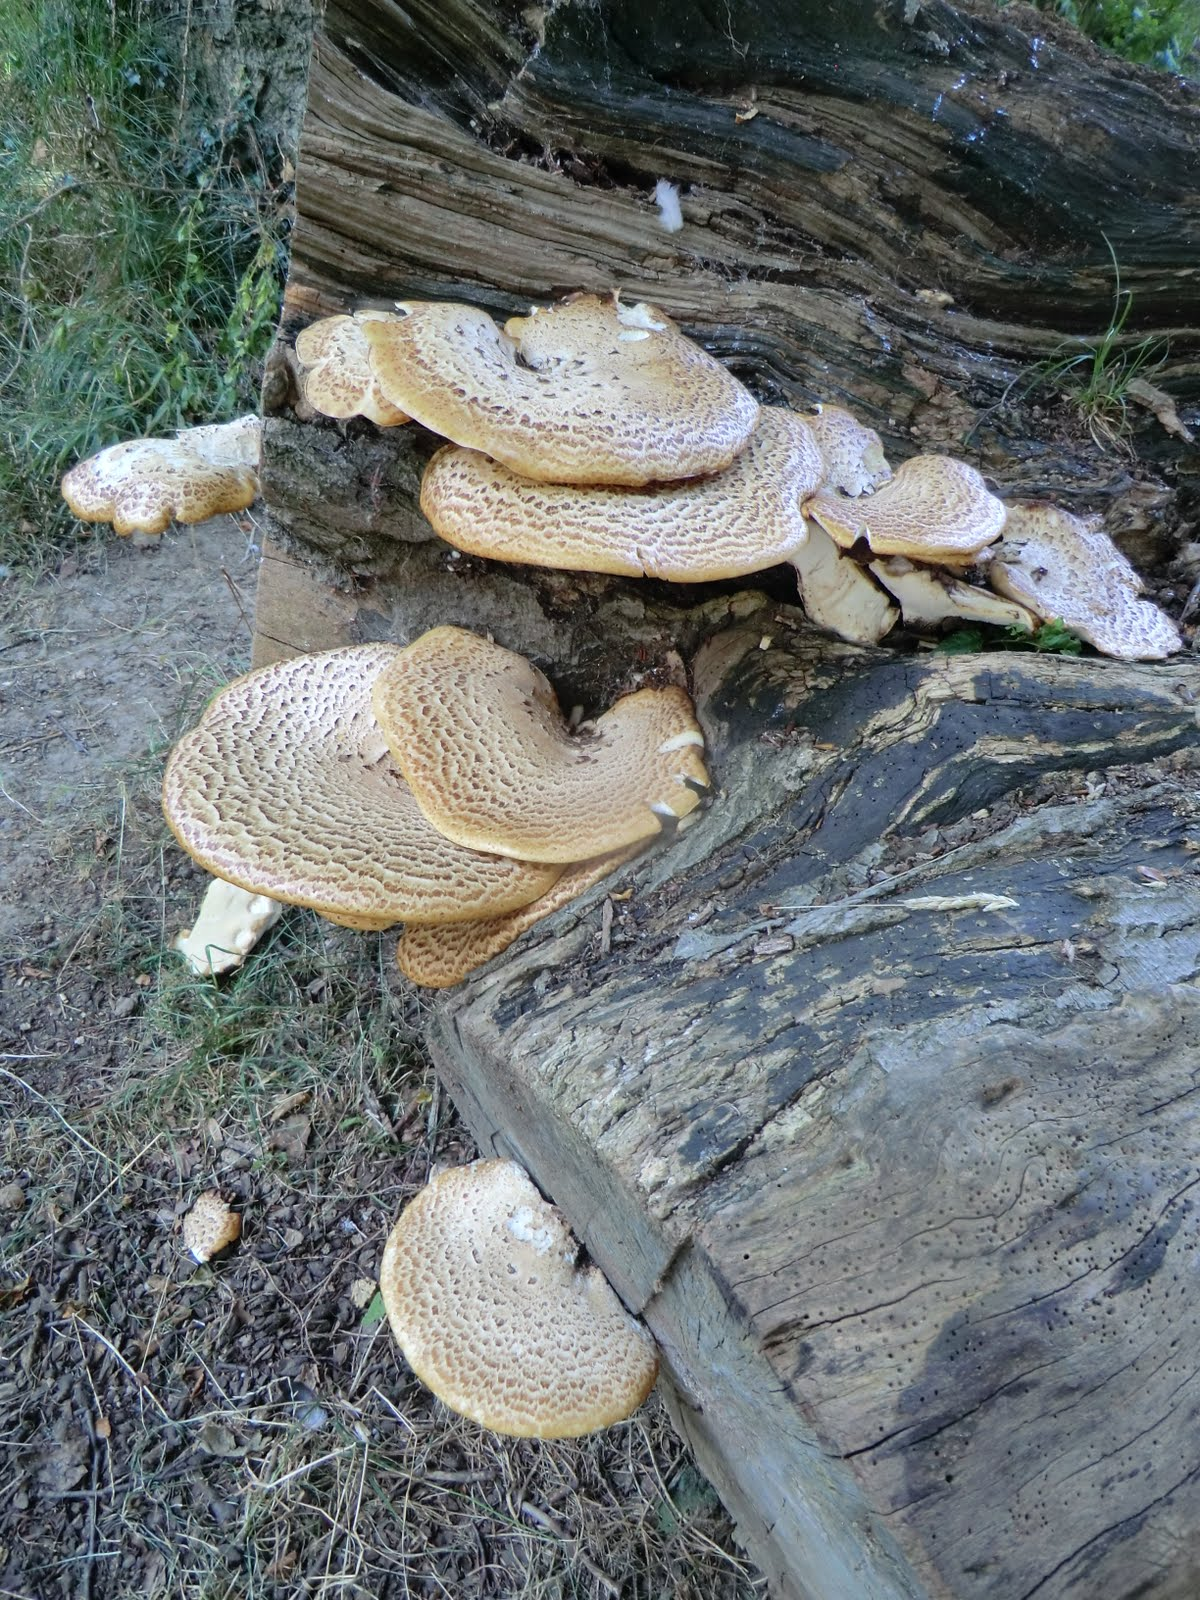 CIMG6050 Dryad's Saddle, Beechy Ride